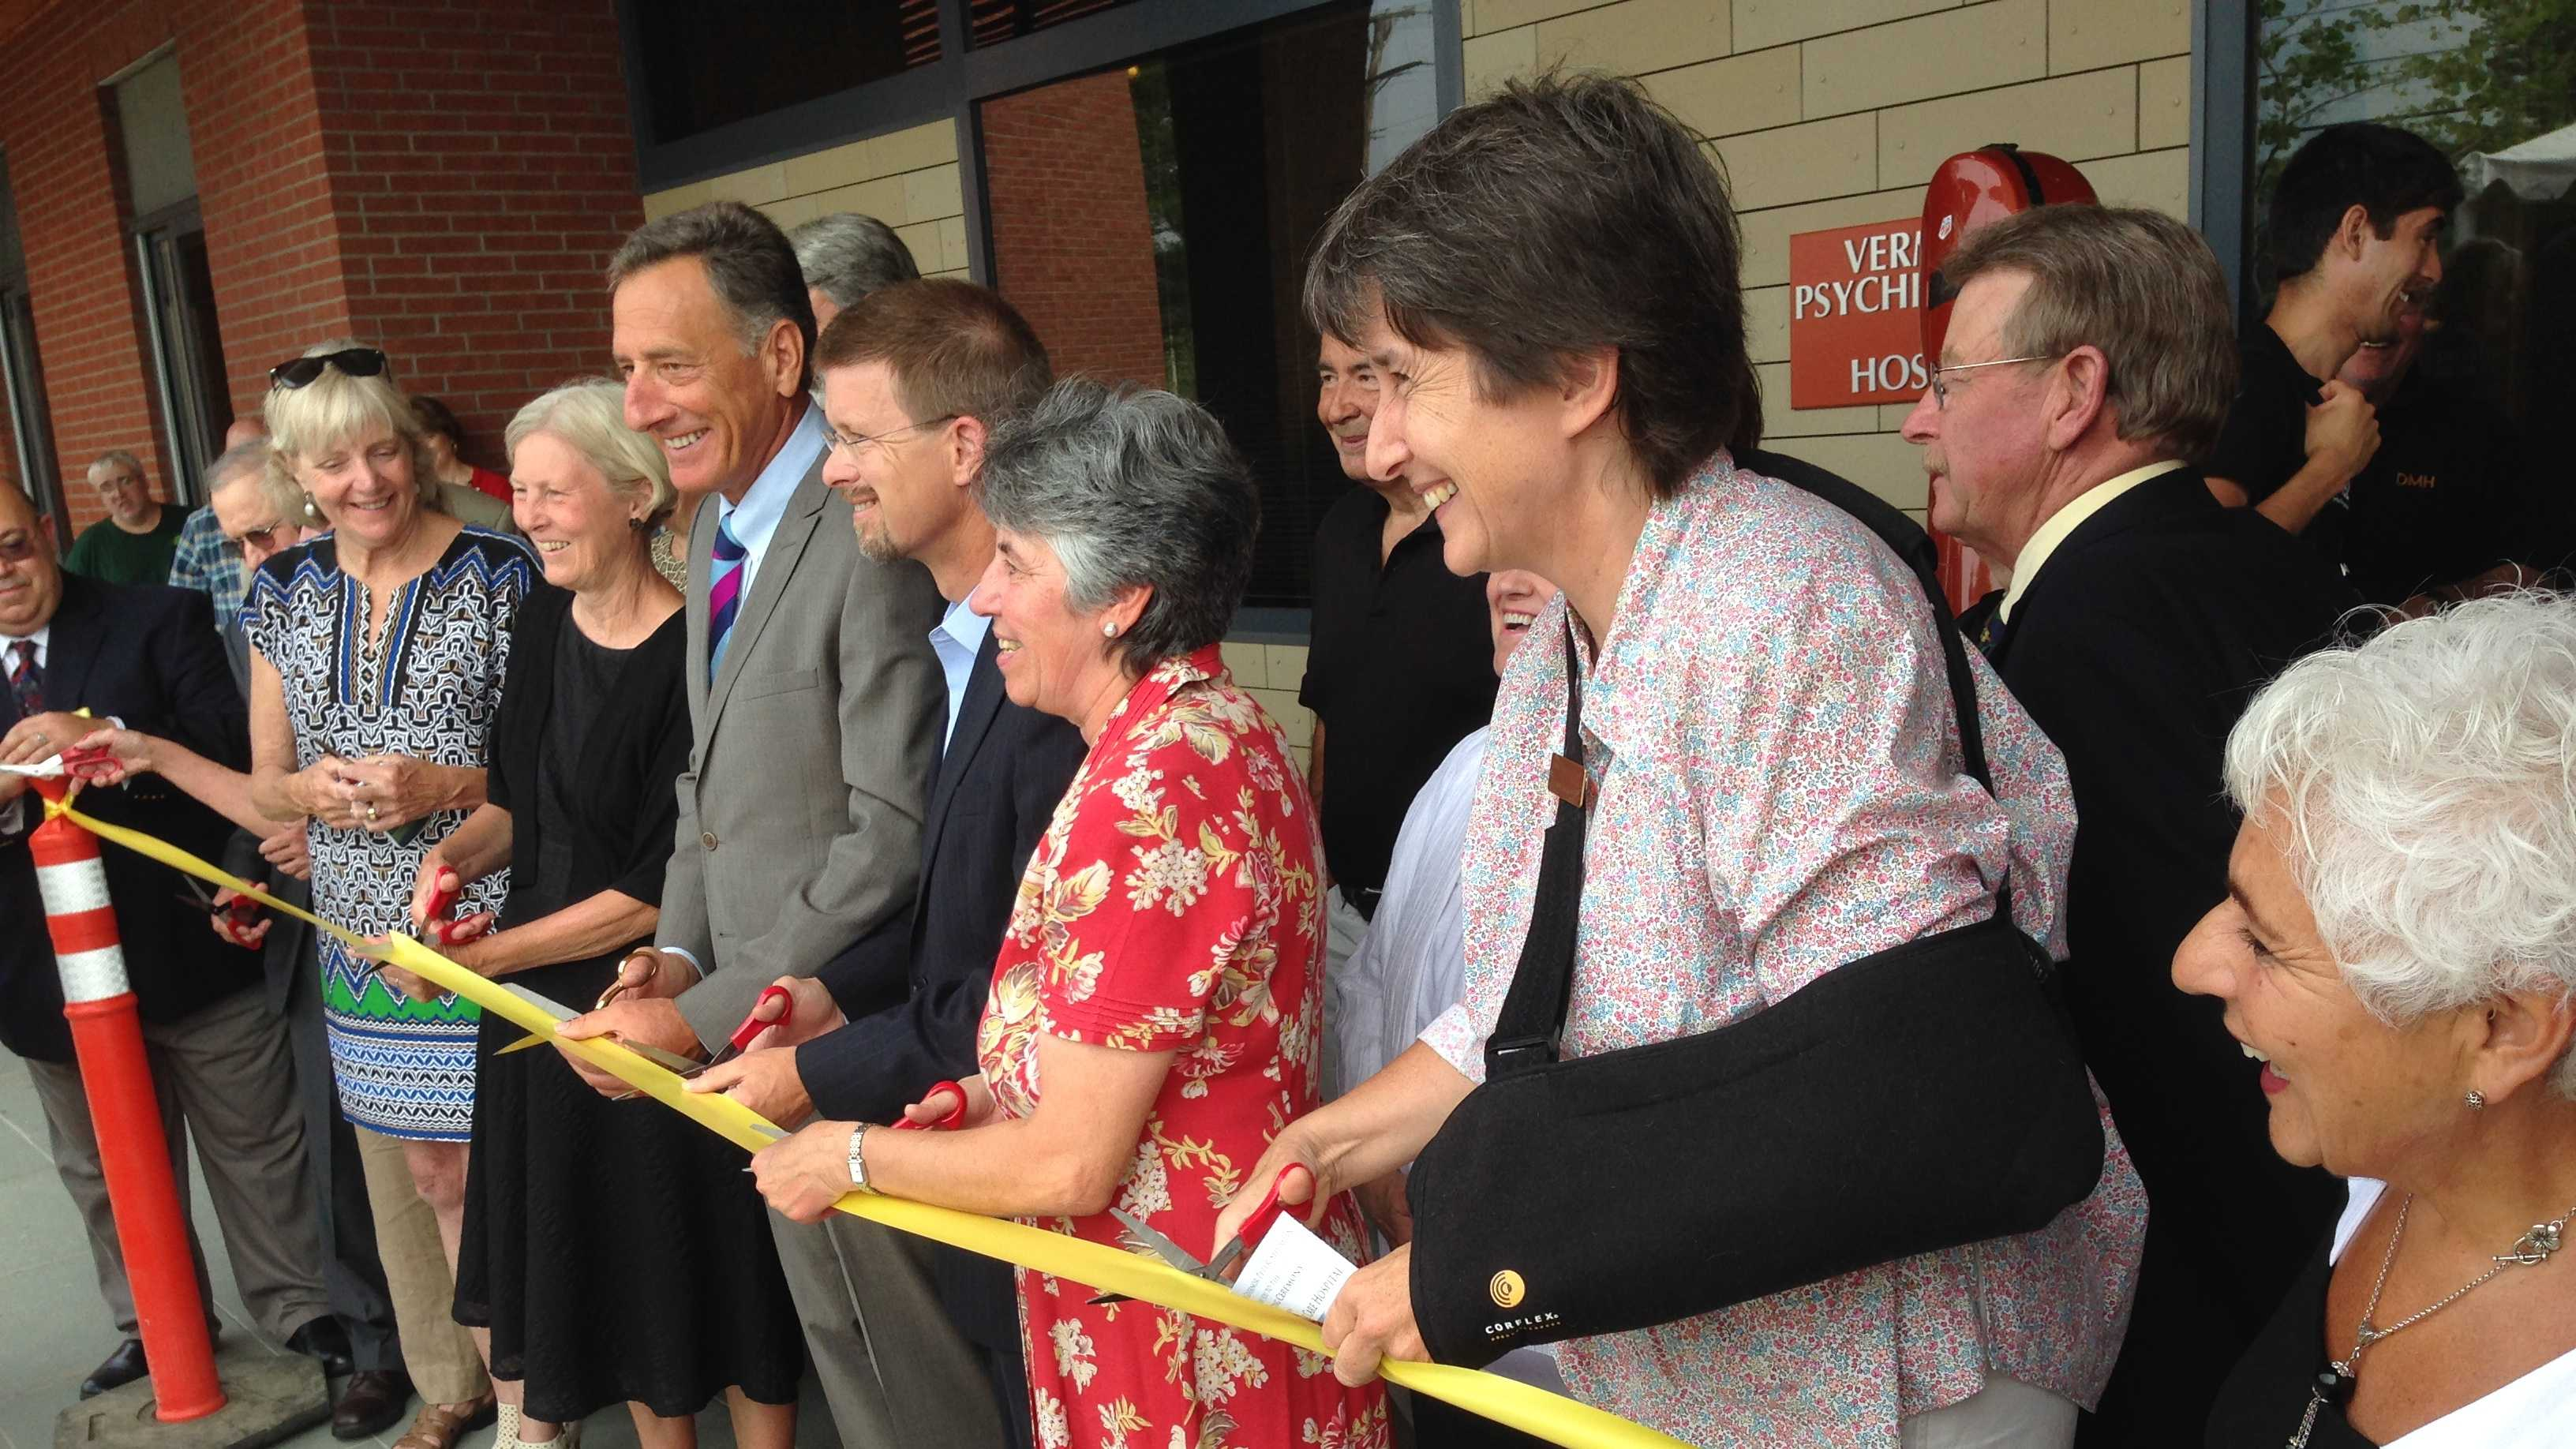 New Psychiatric Hospital Officially Opens